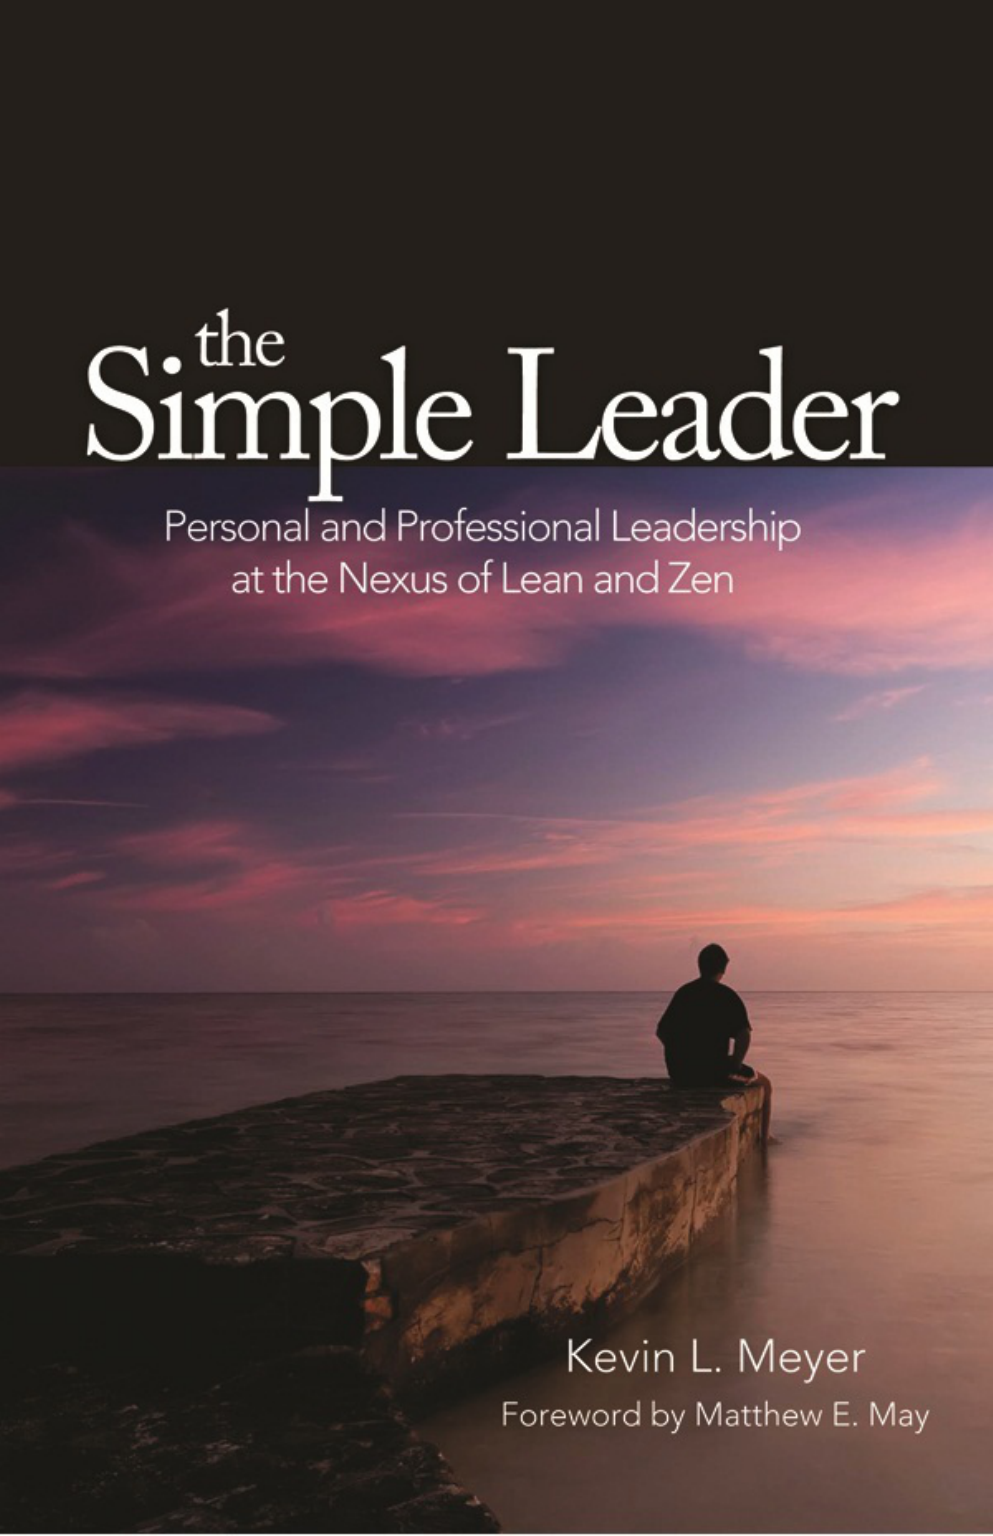 The Simple Leader